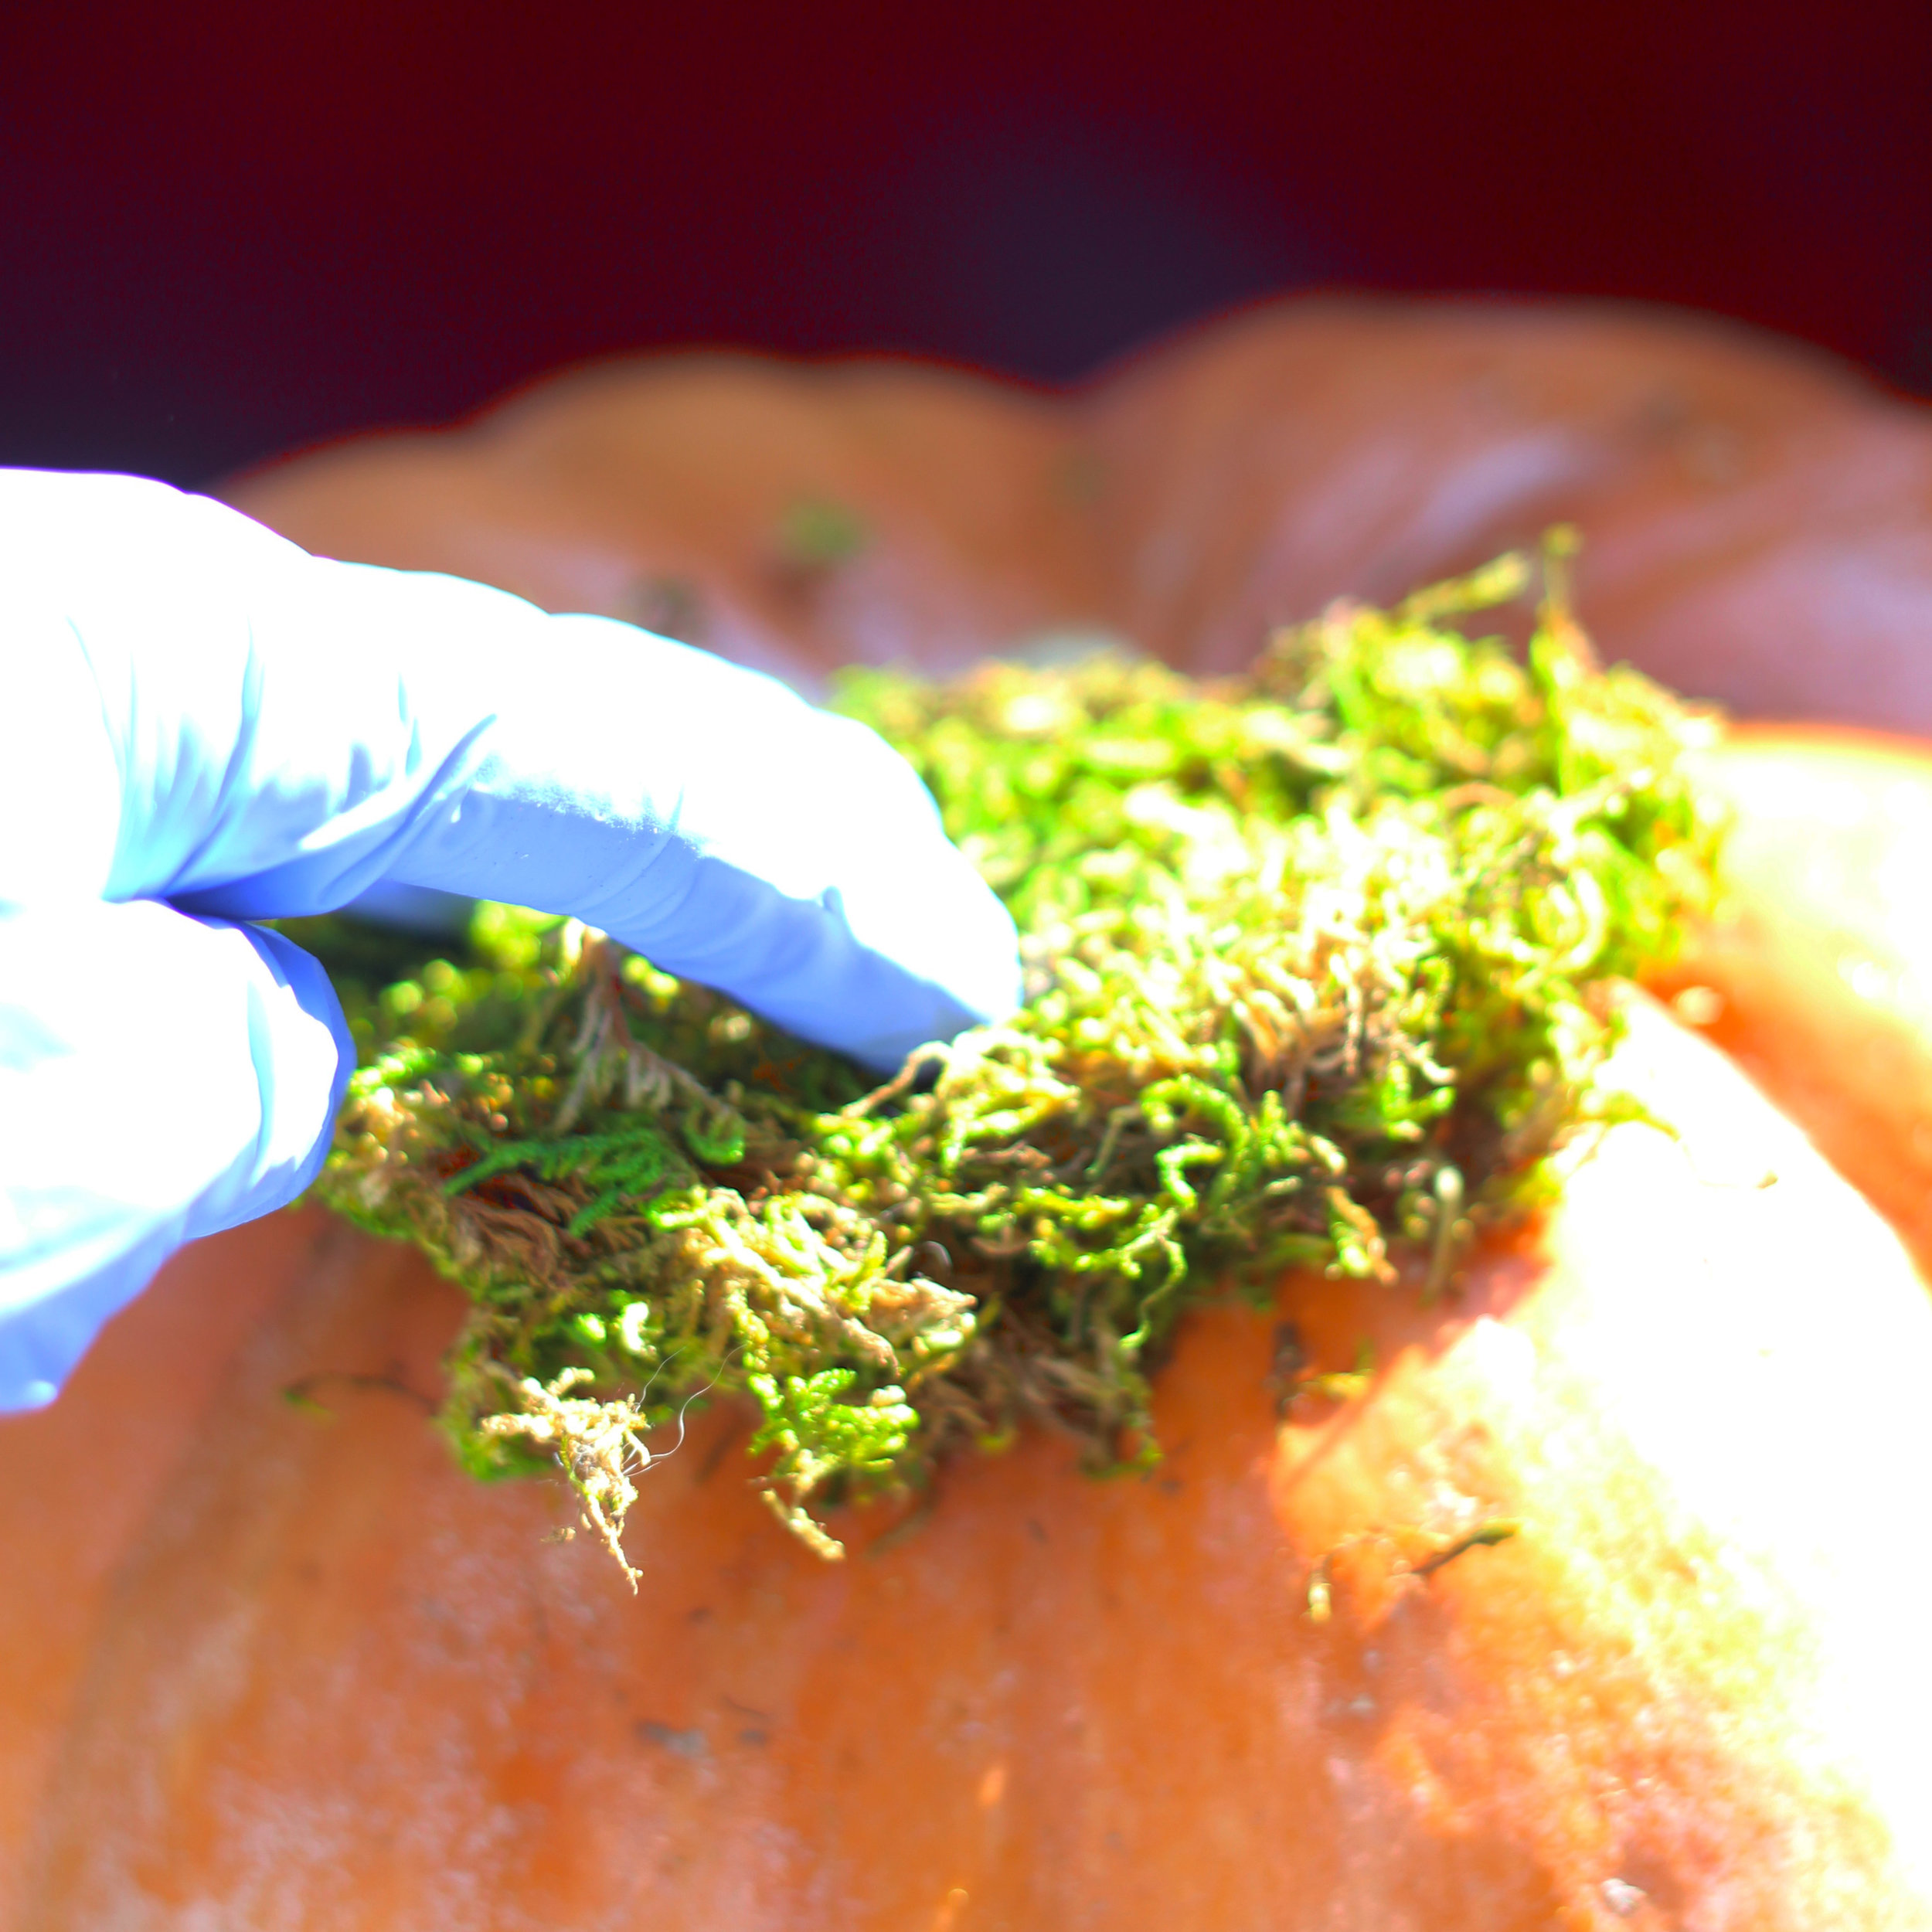 Push moss down and stick onto top of pumpkin.